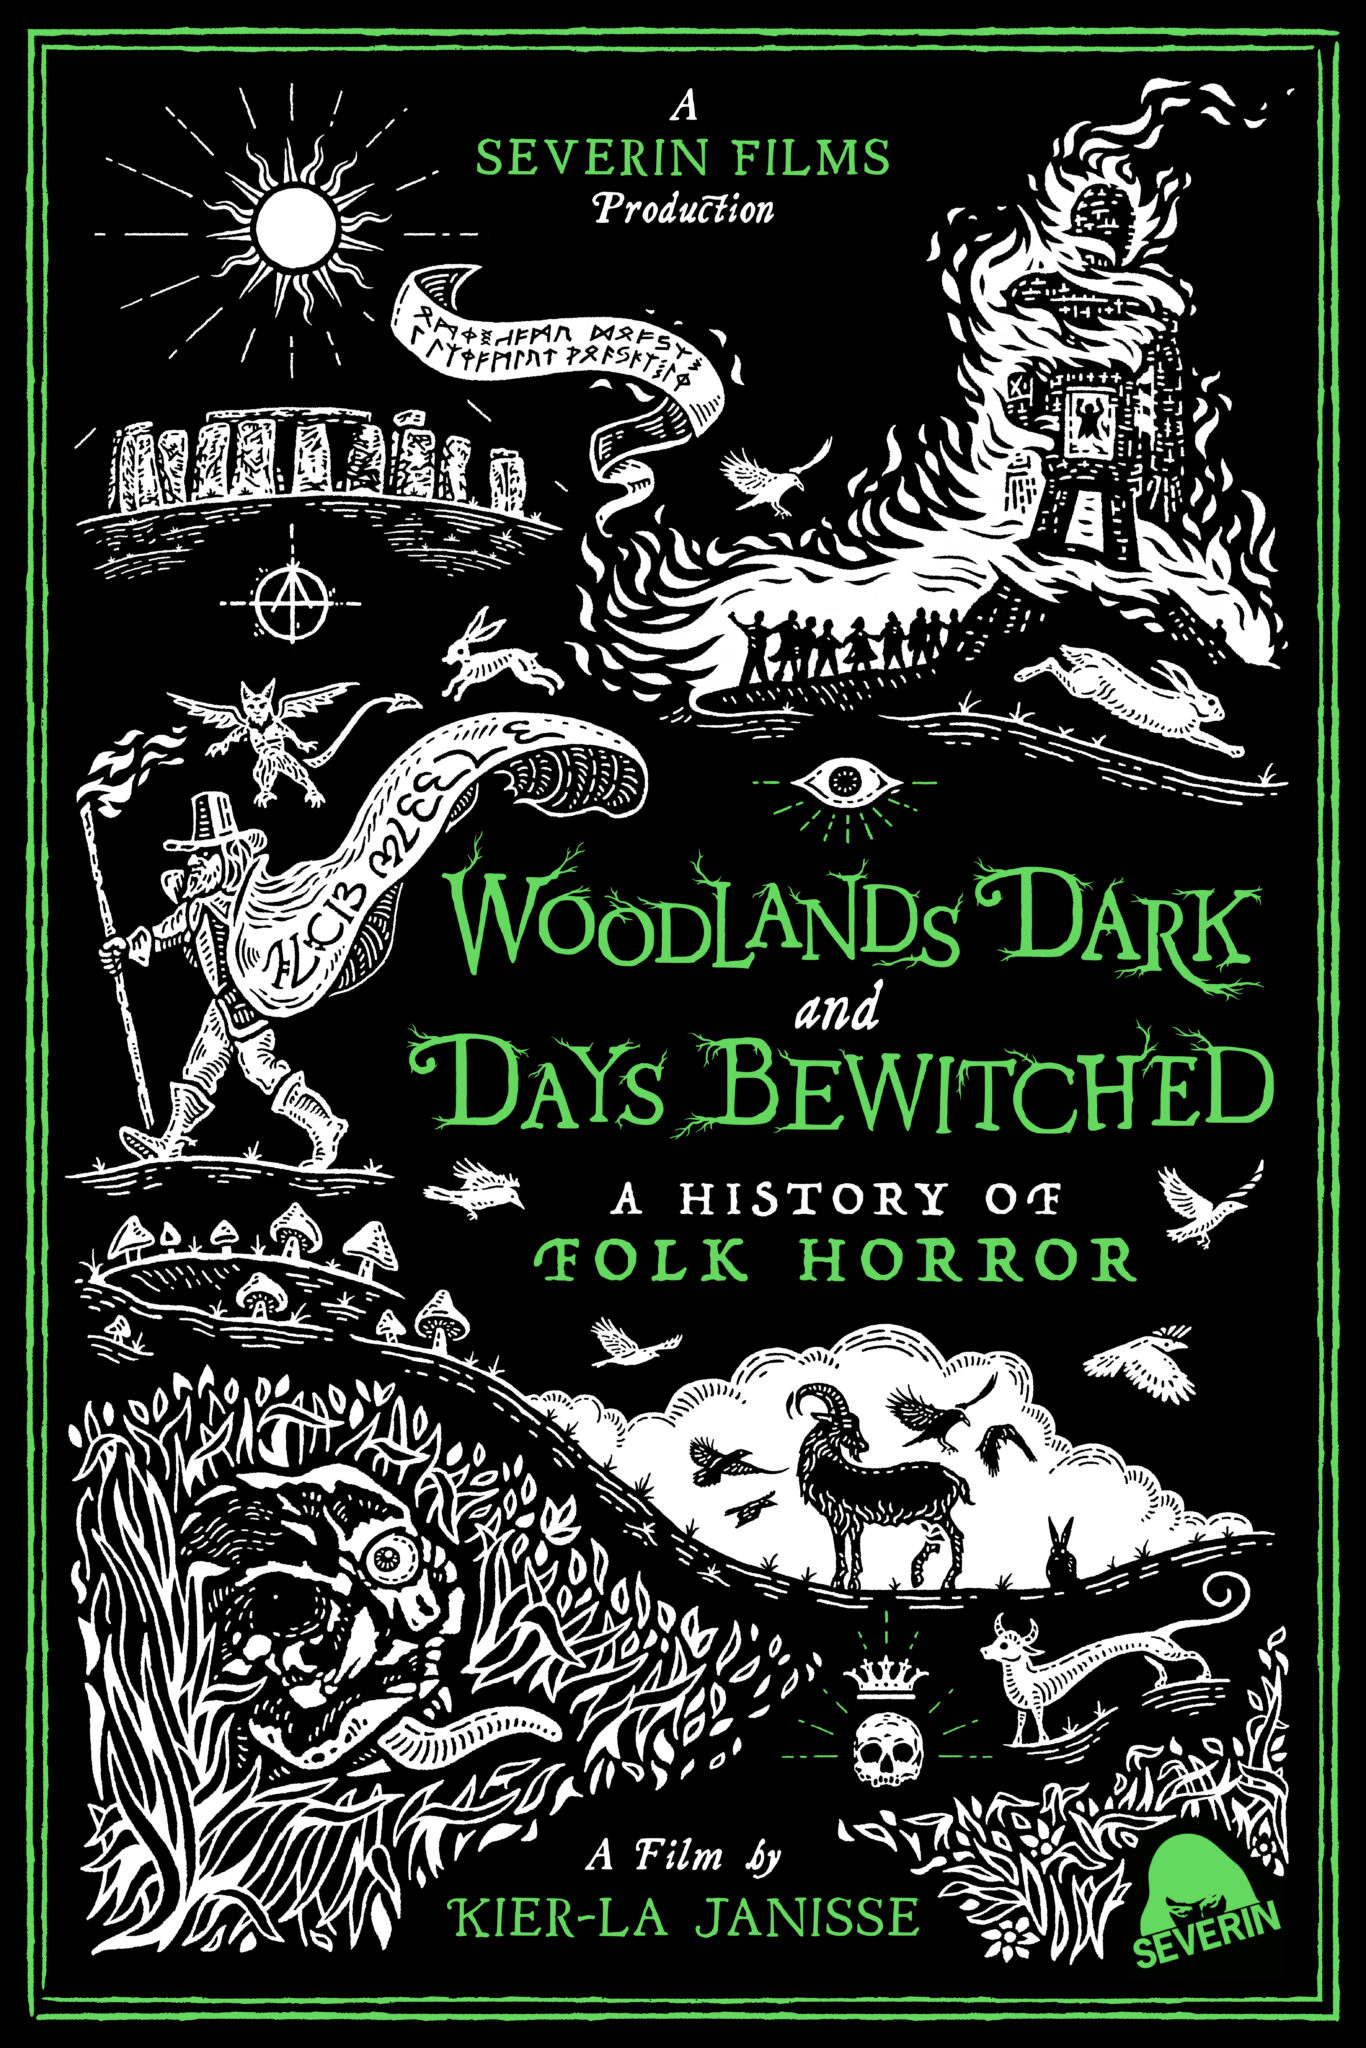 Woodlands-Dark-And-Days-Bewitched-Poster-2021